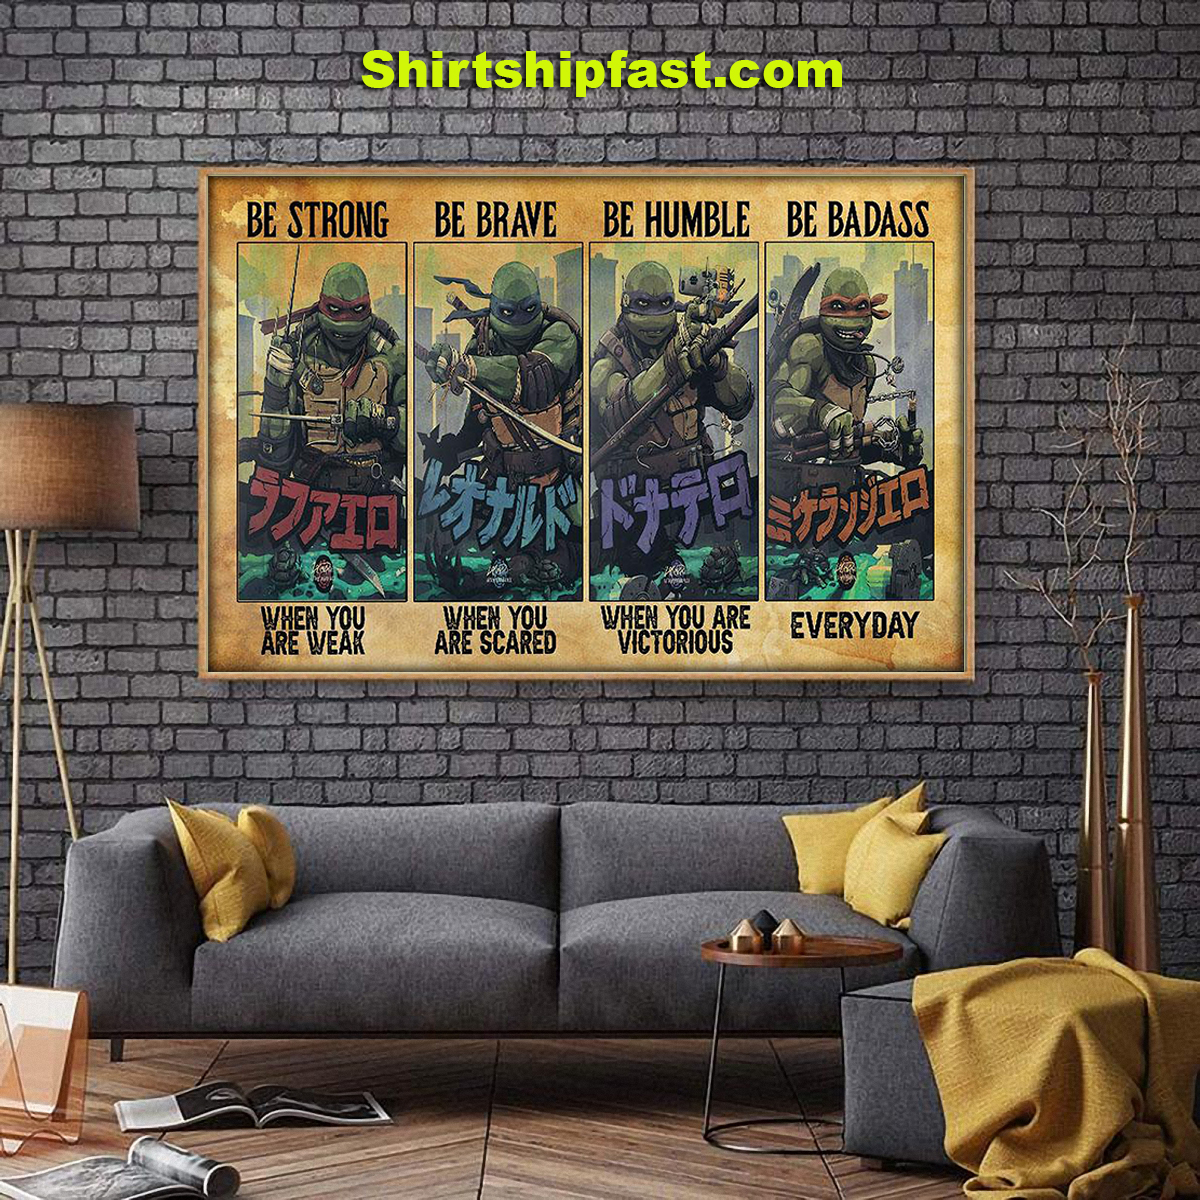 Ninja Turtles be strong be brave be humble be badass poster